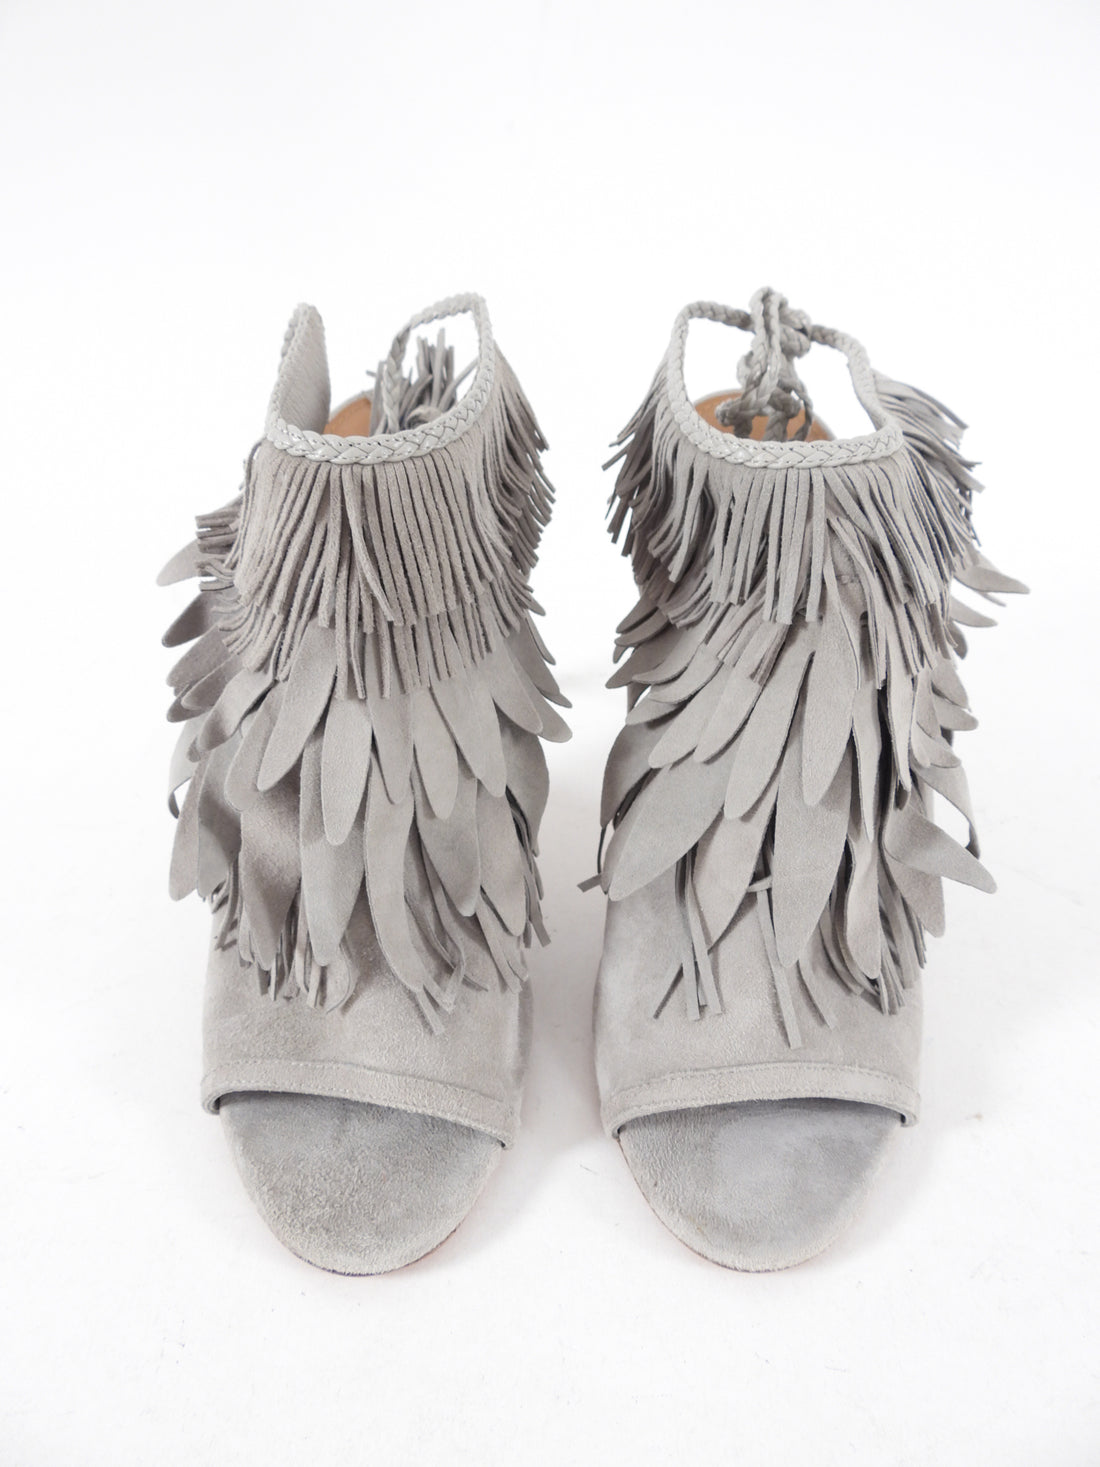 Aquazzura Grey Suede Fringe Mule Sandals - 40 / 9.5